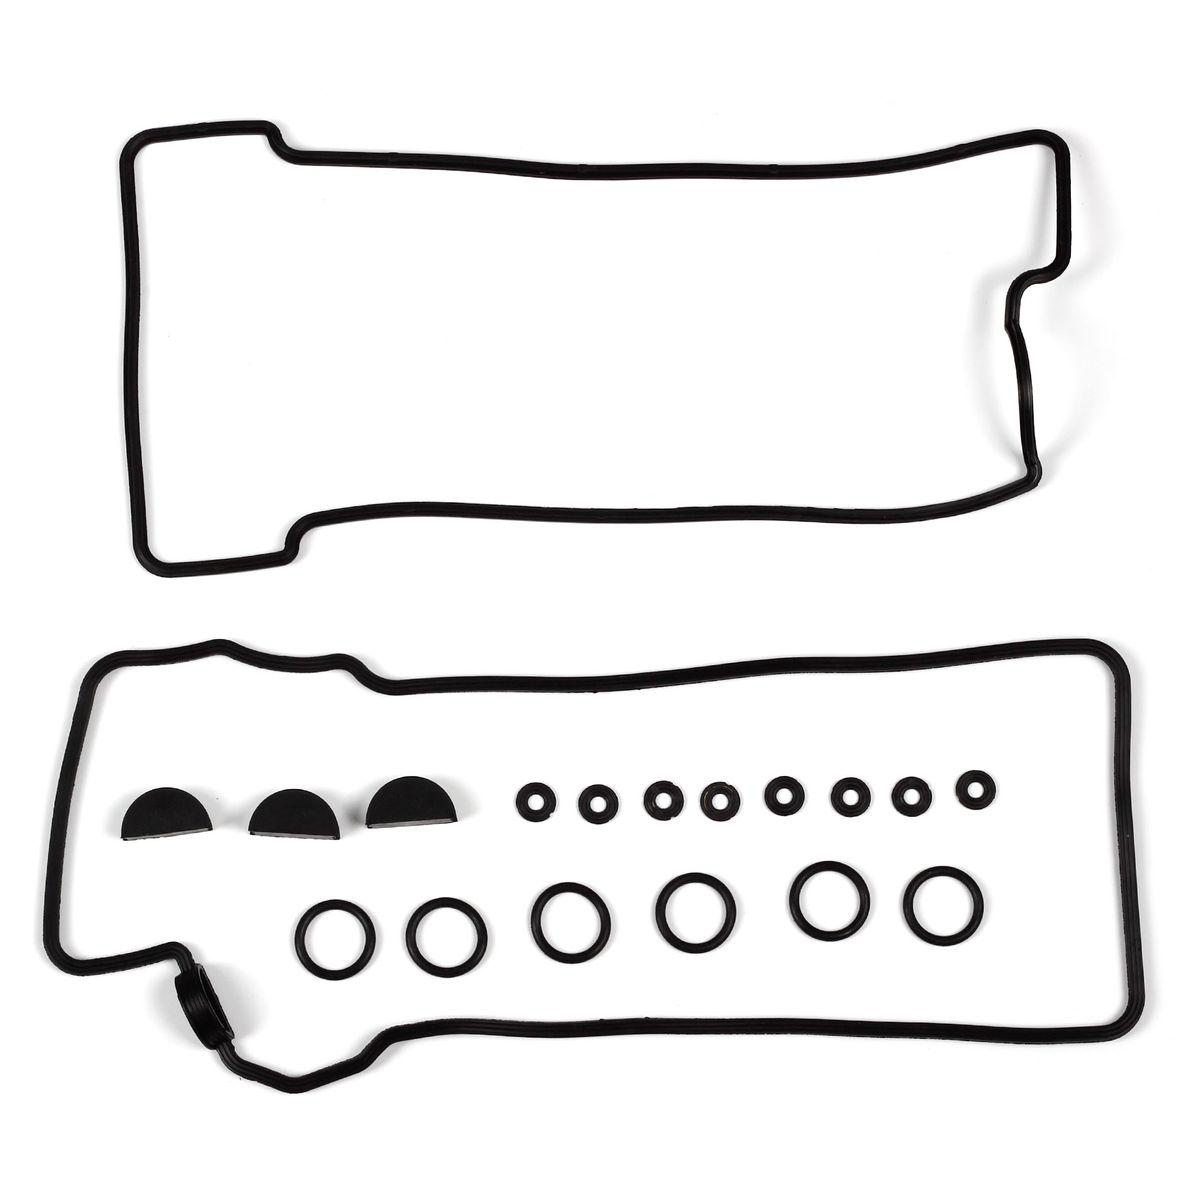 Valve Cover Gasket For Suzuki Grand Vitara 1999-2005 2.5L